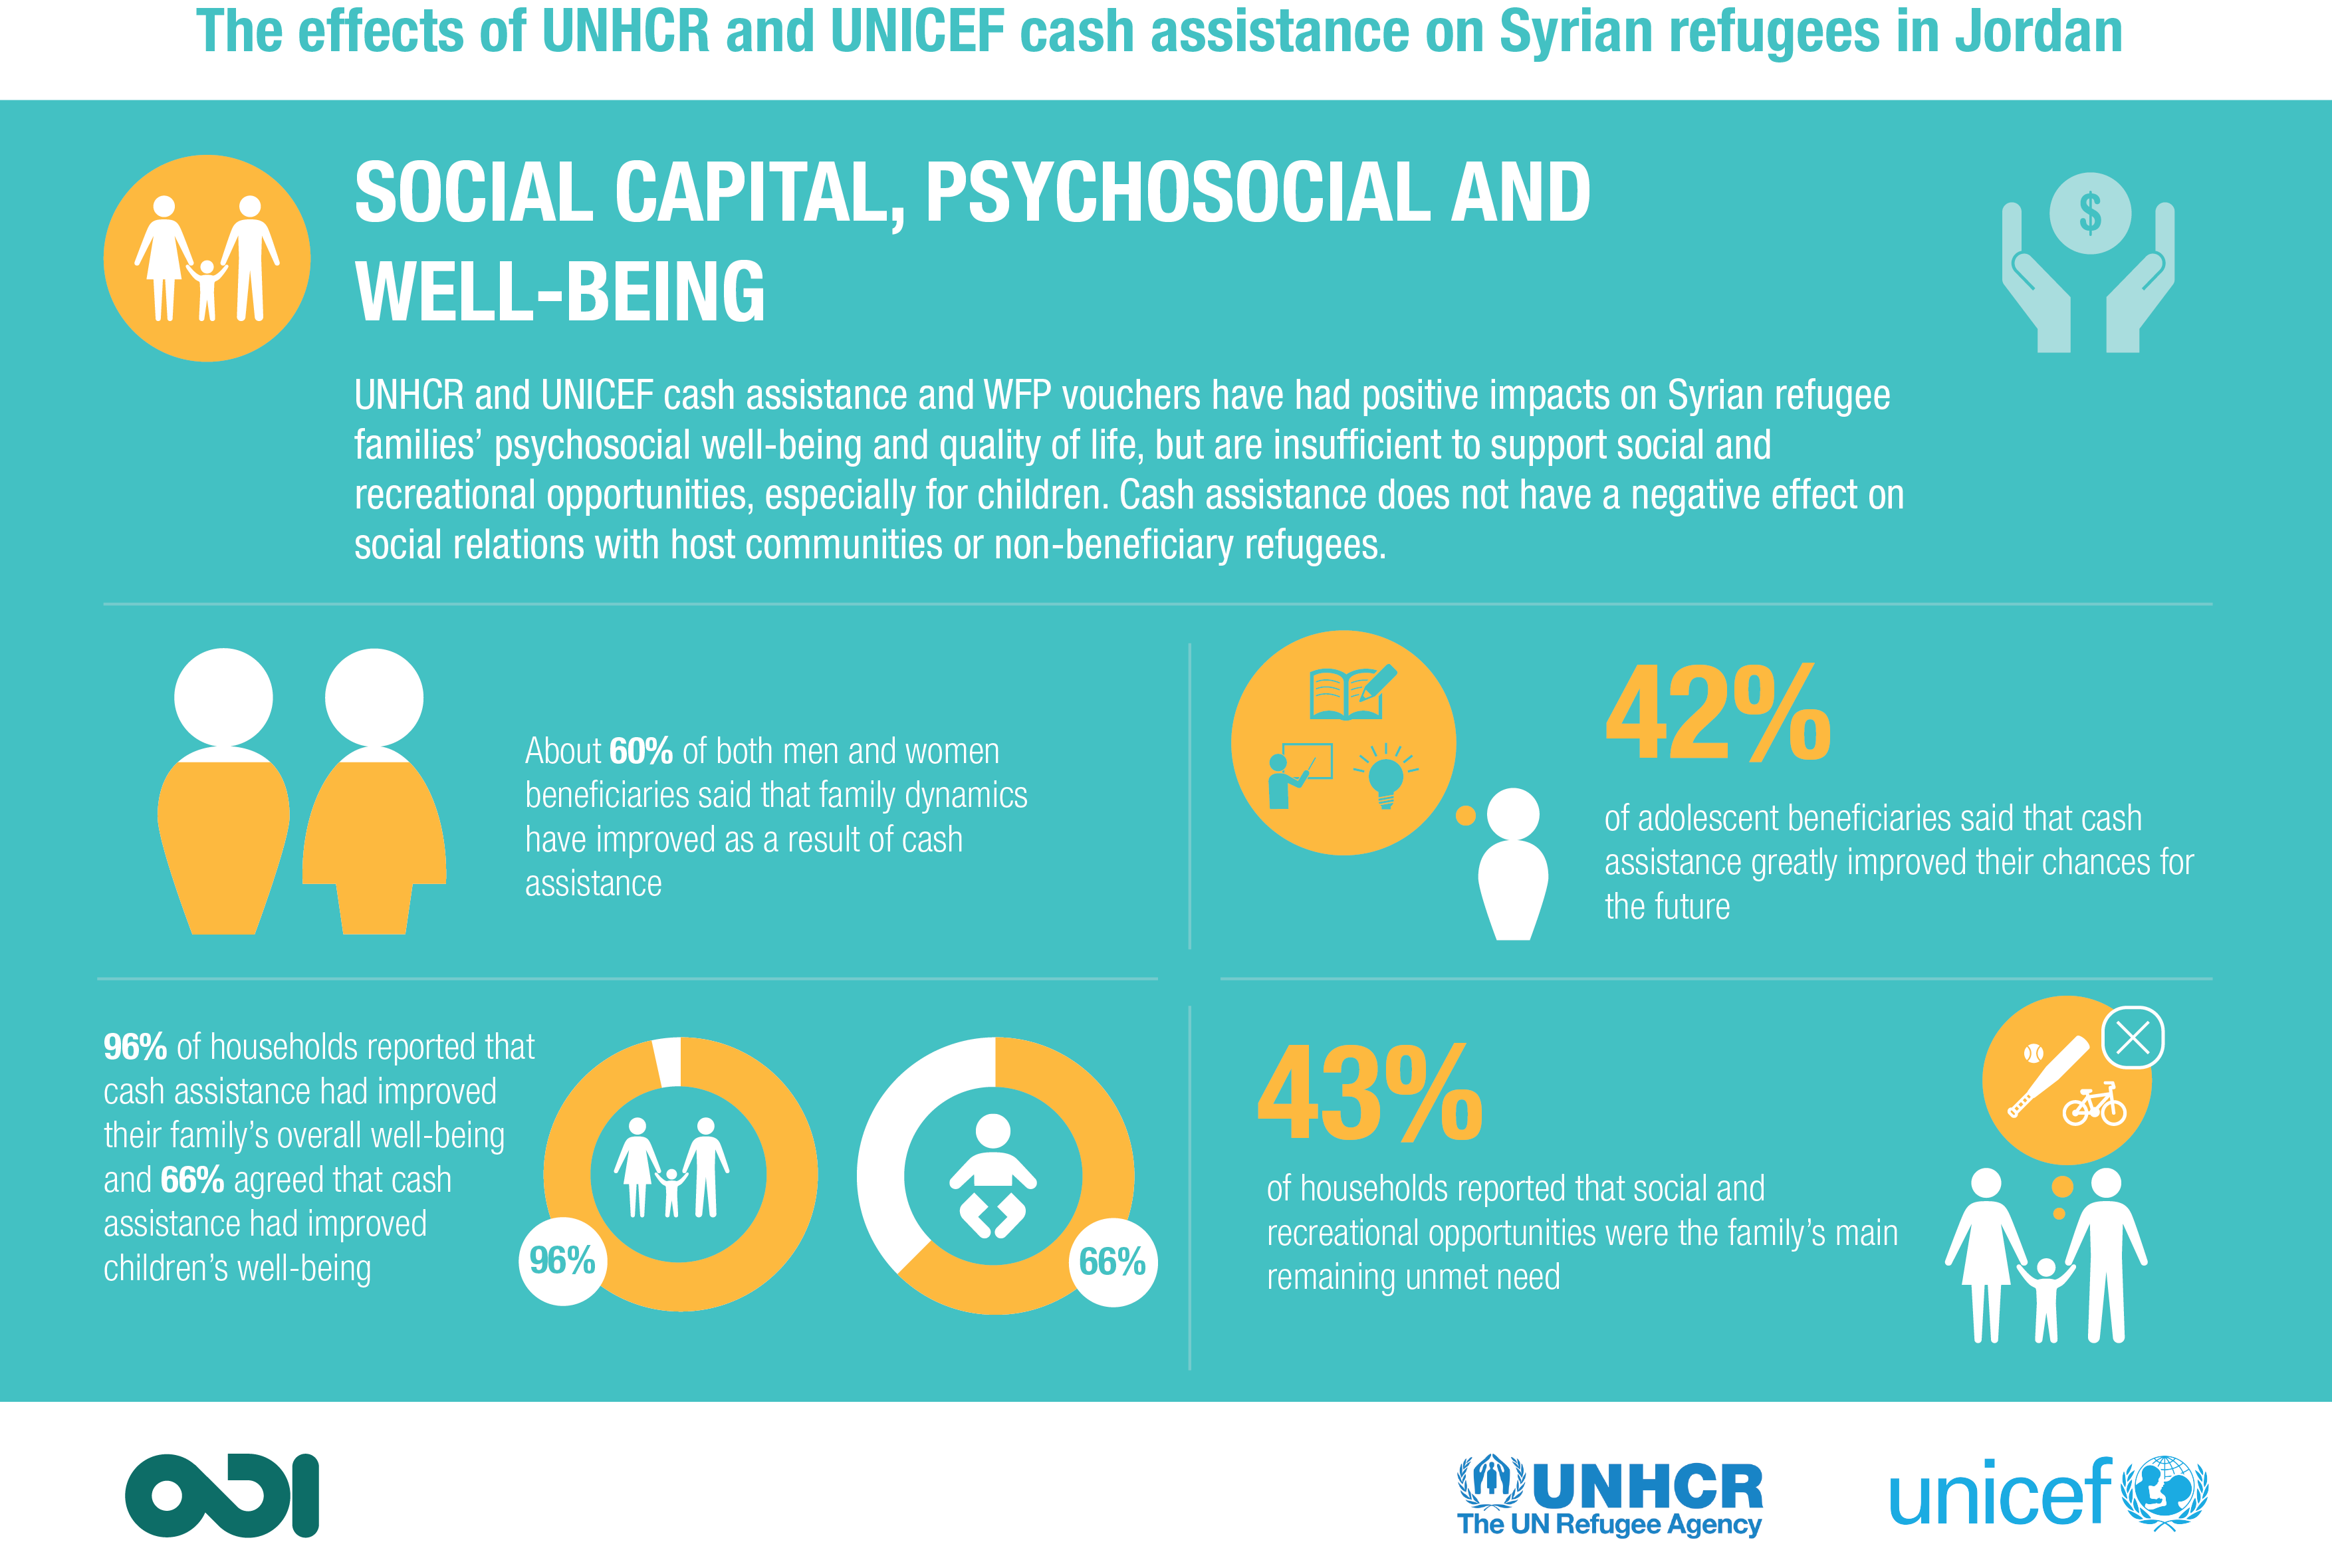 Social capital, psychosocial and well-being